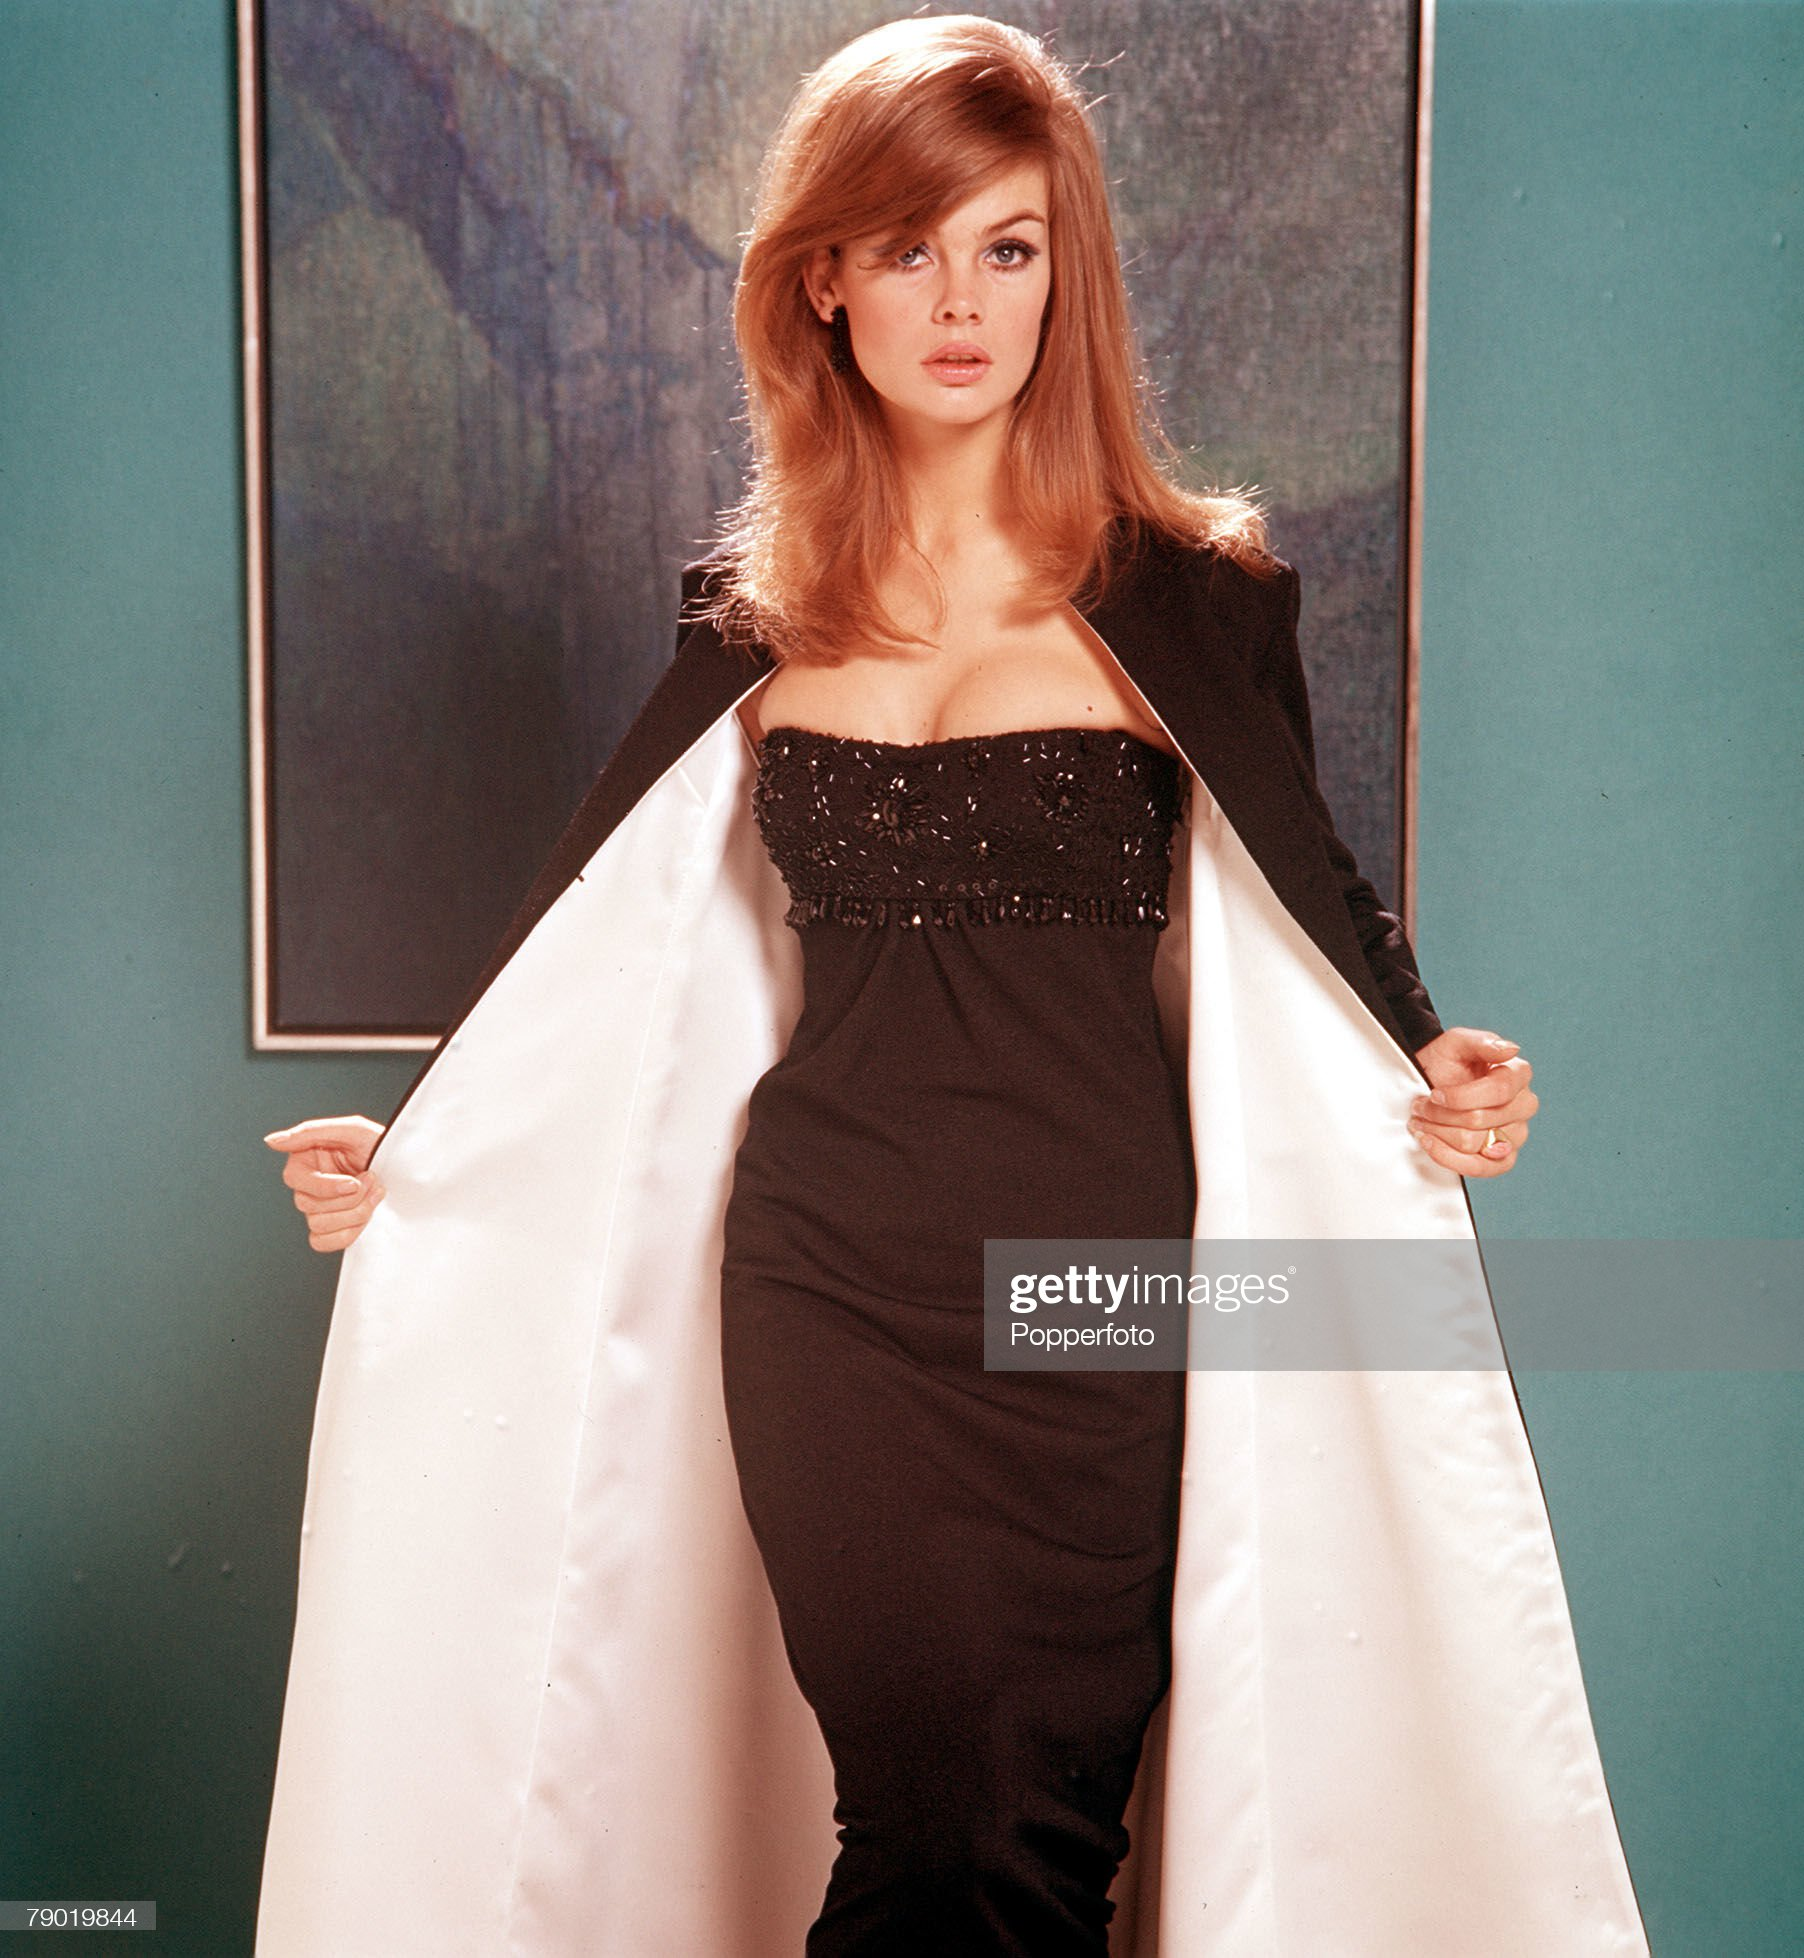 1965. A portrait of Jean Shrimpton wearing a black strap-less evening dress whilst holding open a smart white-lined long black jacket with a serious expression towards the camera. : News Photo